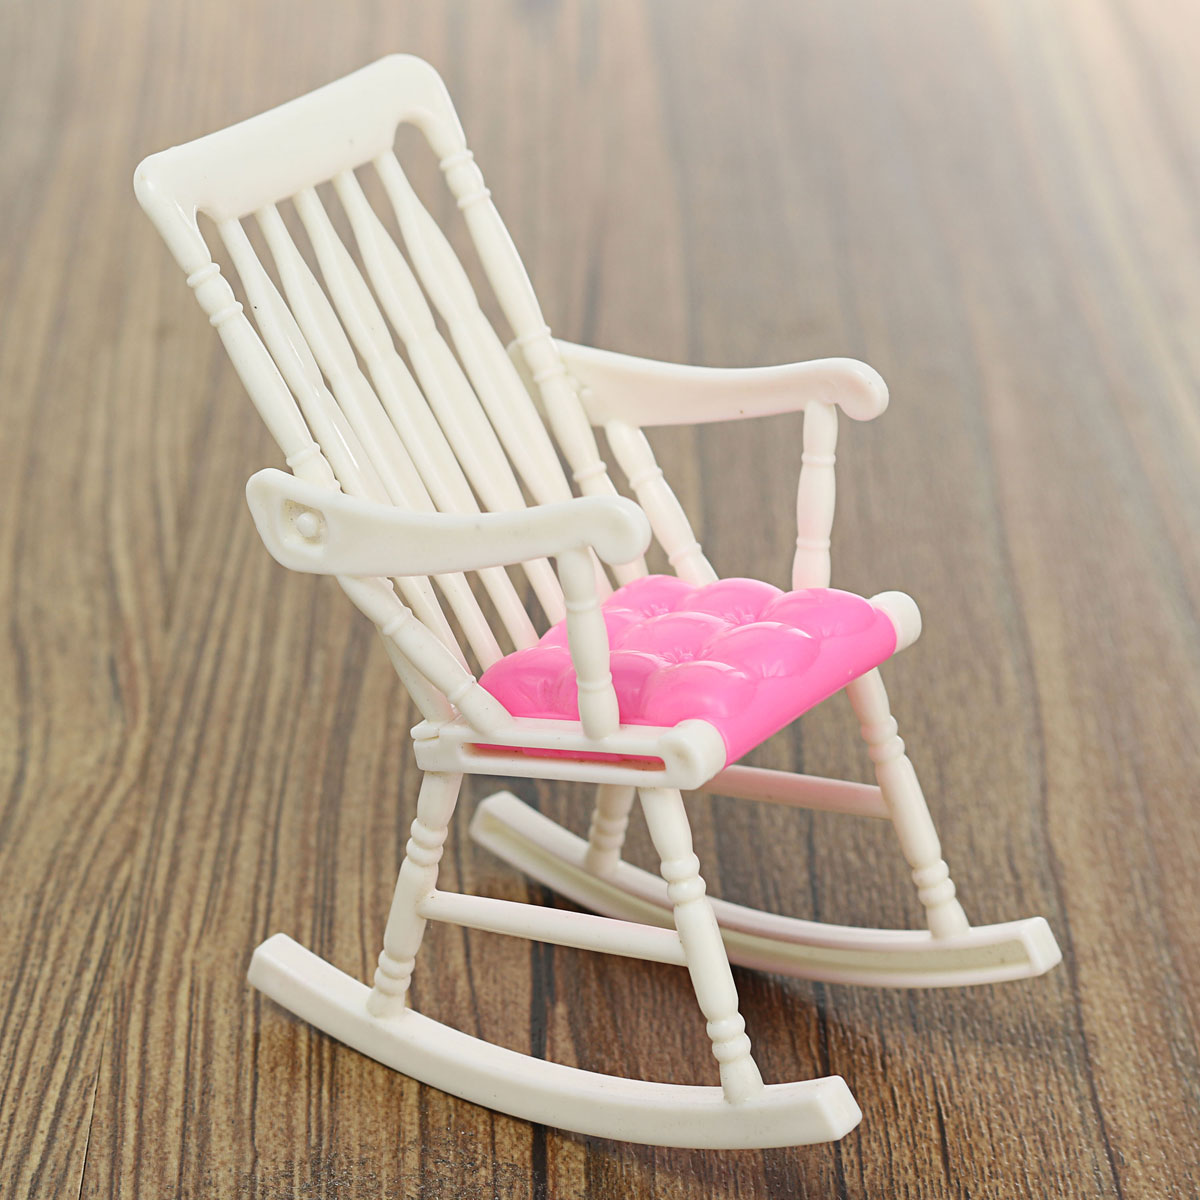 Mini Rocking Chair Wheel Chairs For Dogs Miniature Doll Accessories ⓪